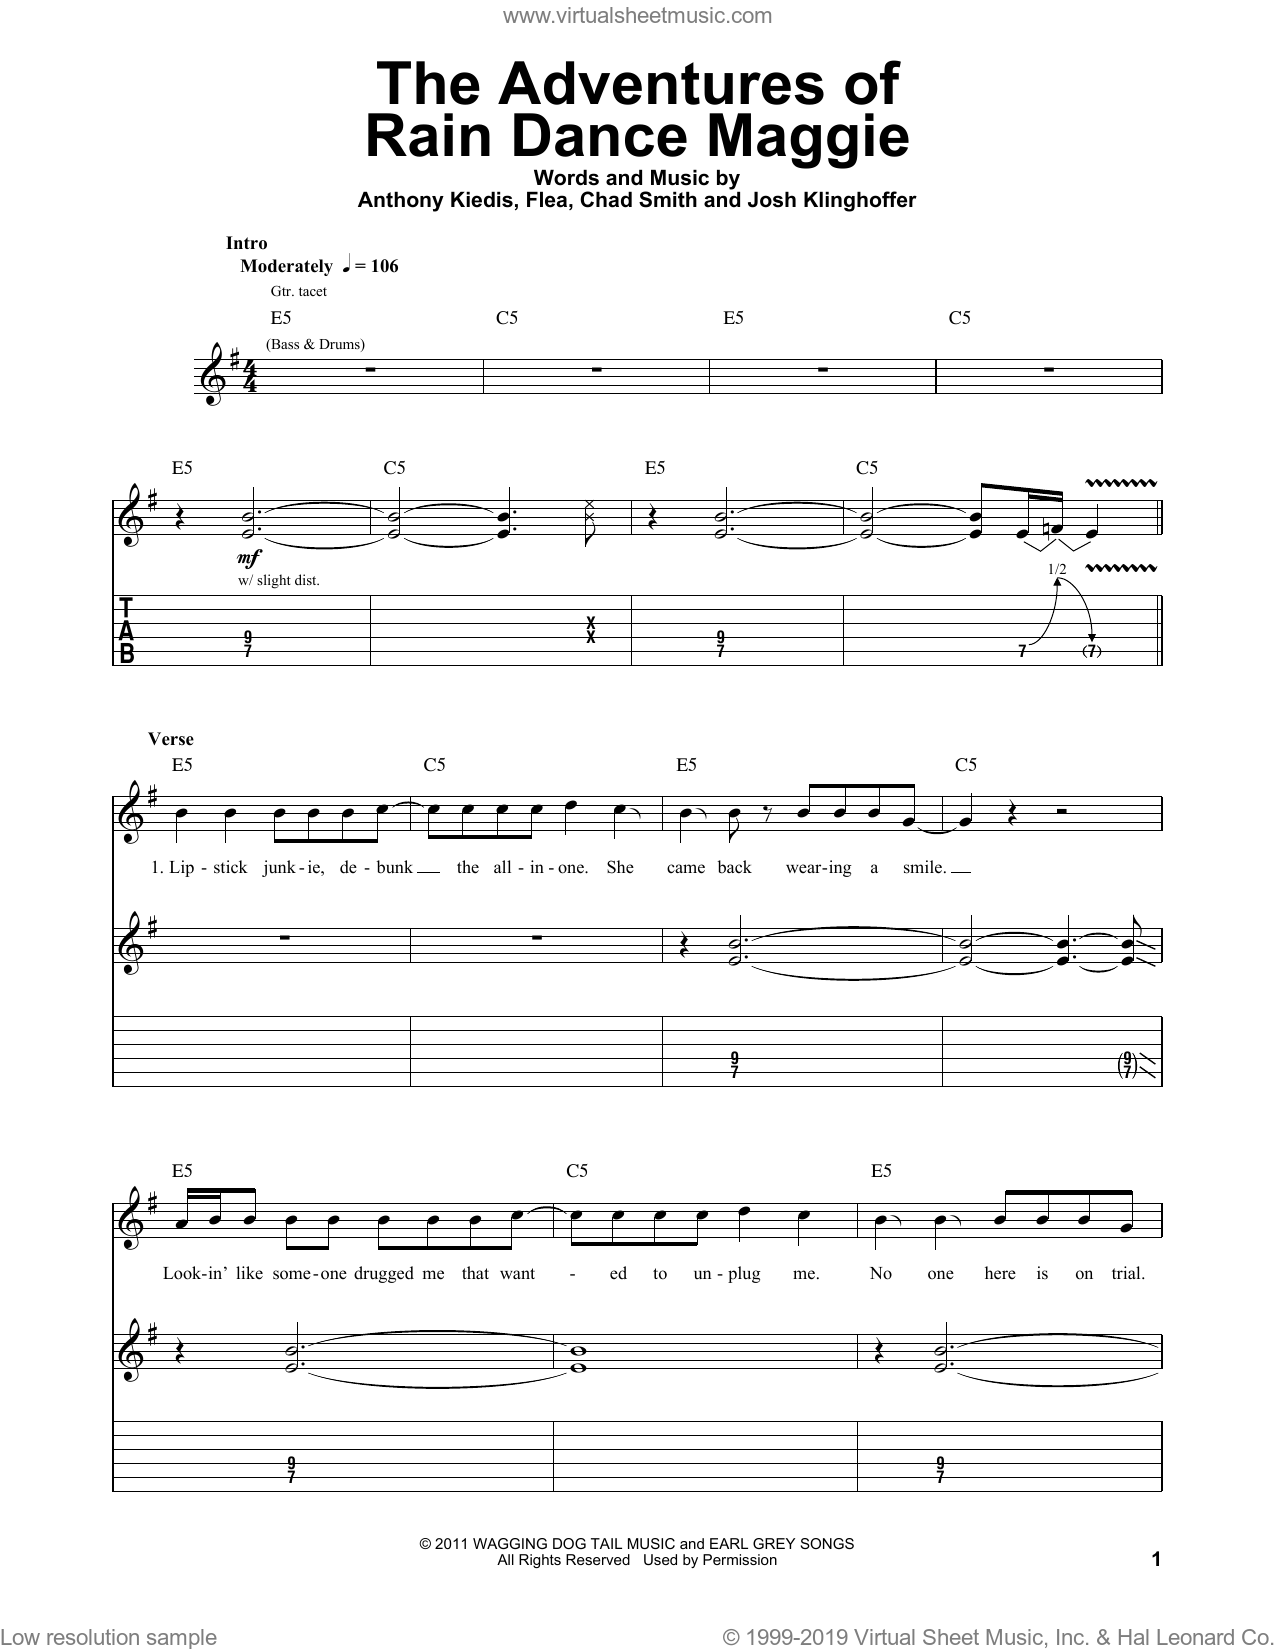 The Adventures Of Rain Dance Maggie sheet music for guitar (tablature, play-along) by Red Hot Chili Peppers, Anthony Kiedis, Chad Smith, Flea and Josh Klinghoffer, intermediate skill level